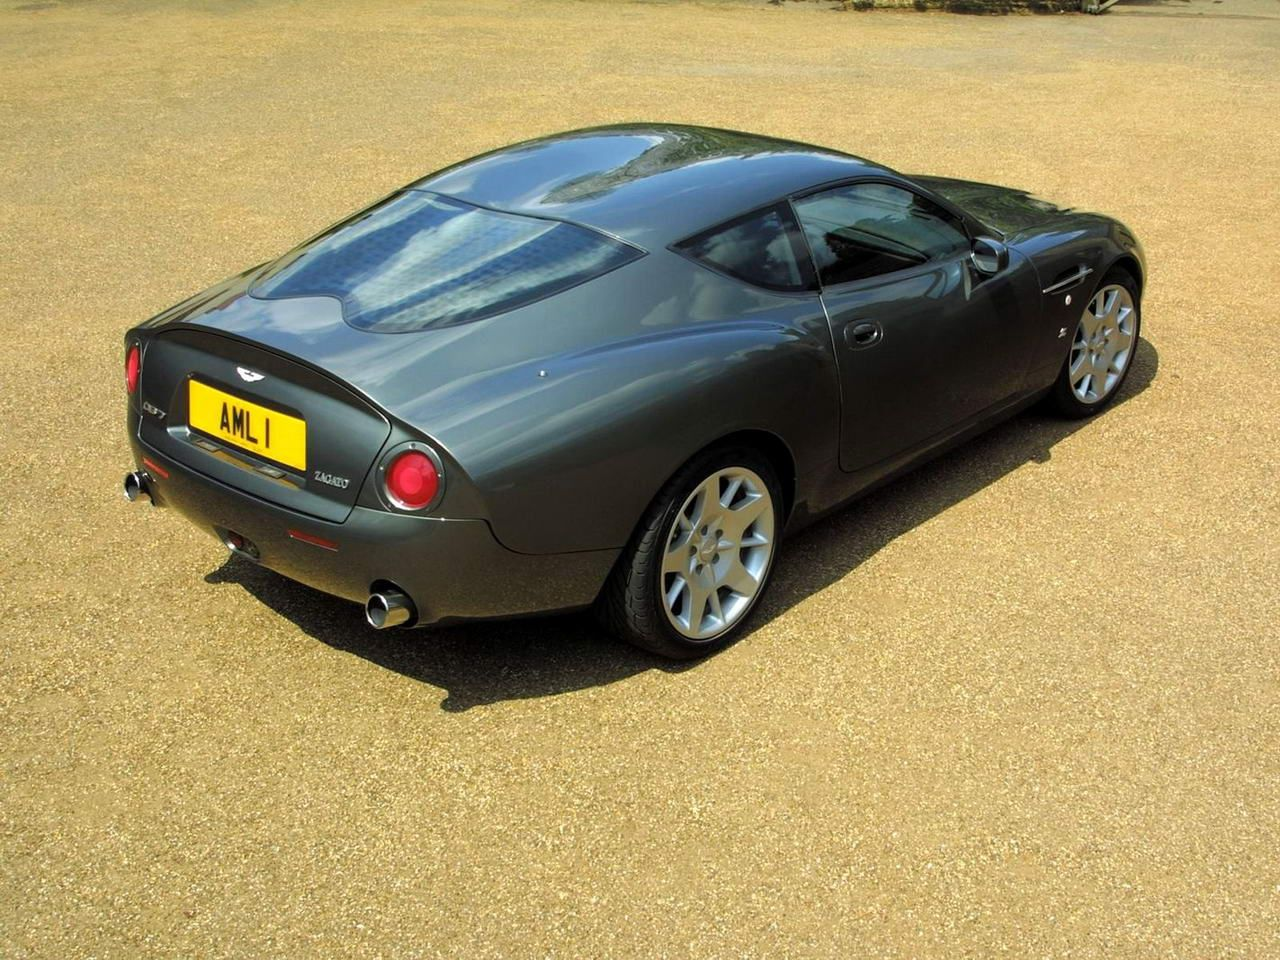 aston martin db7 zagato - just try to find it in anything, but